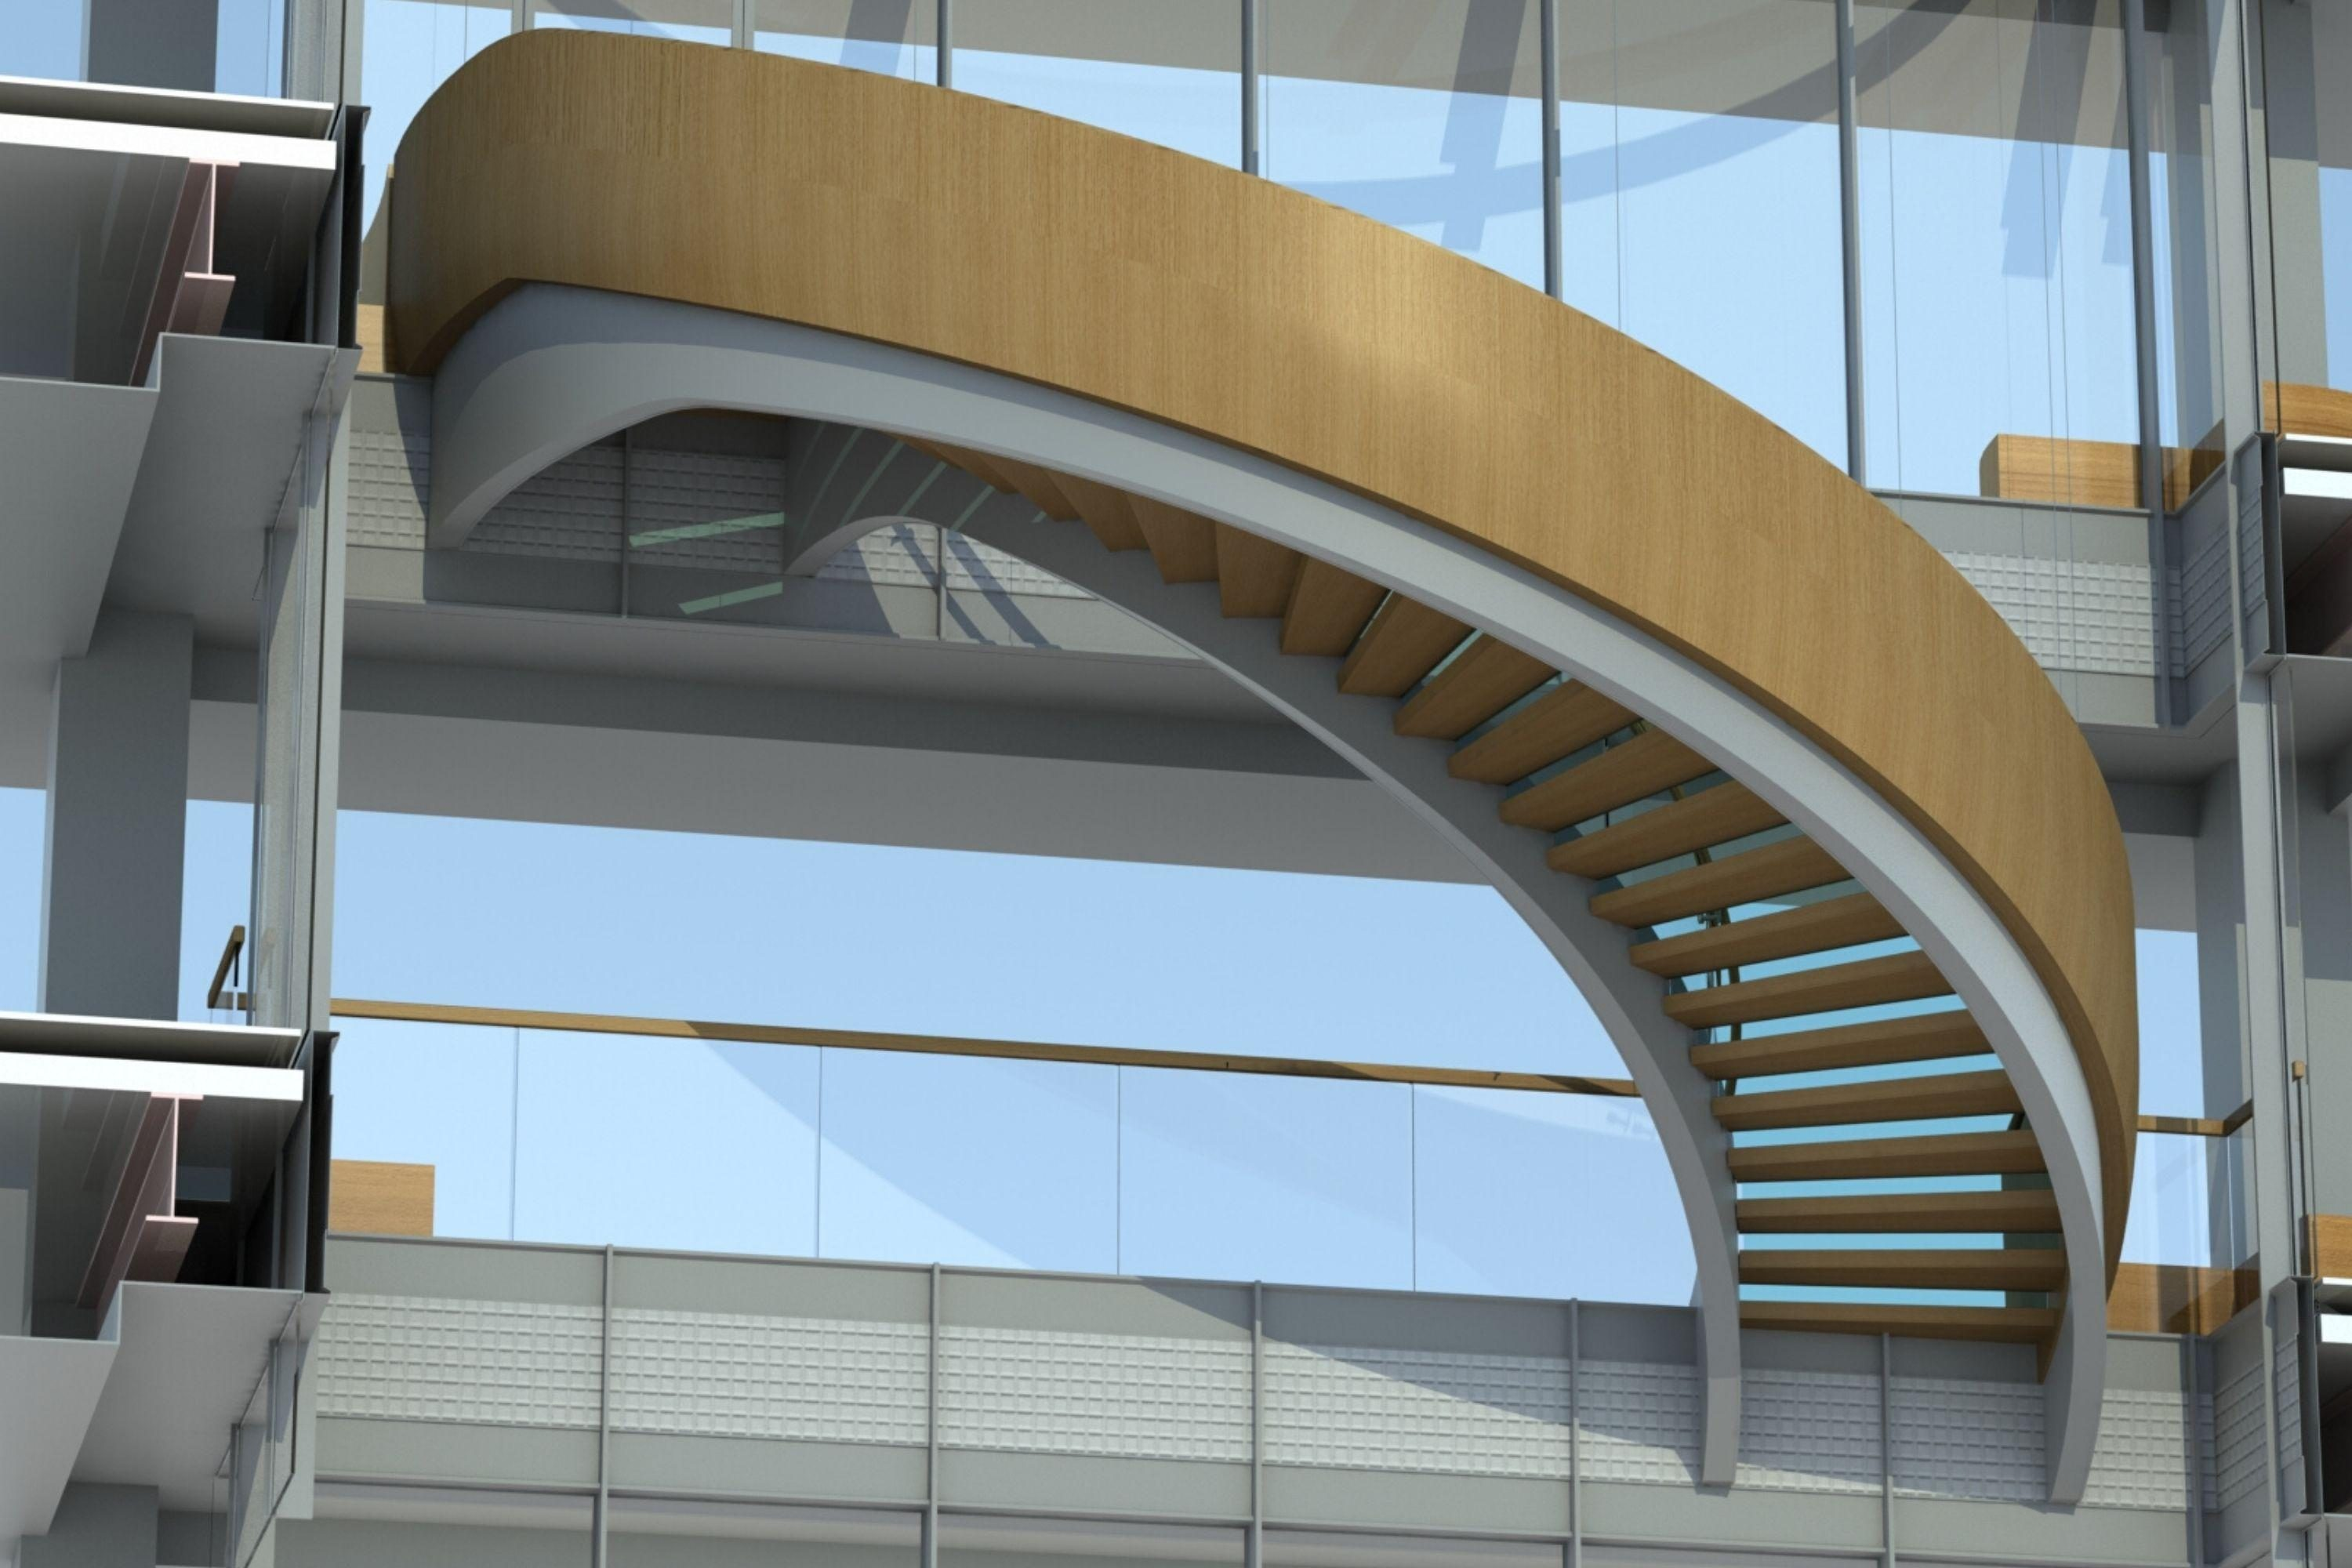 Render of helical staircase